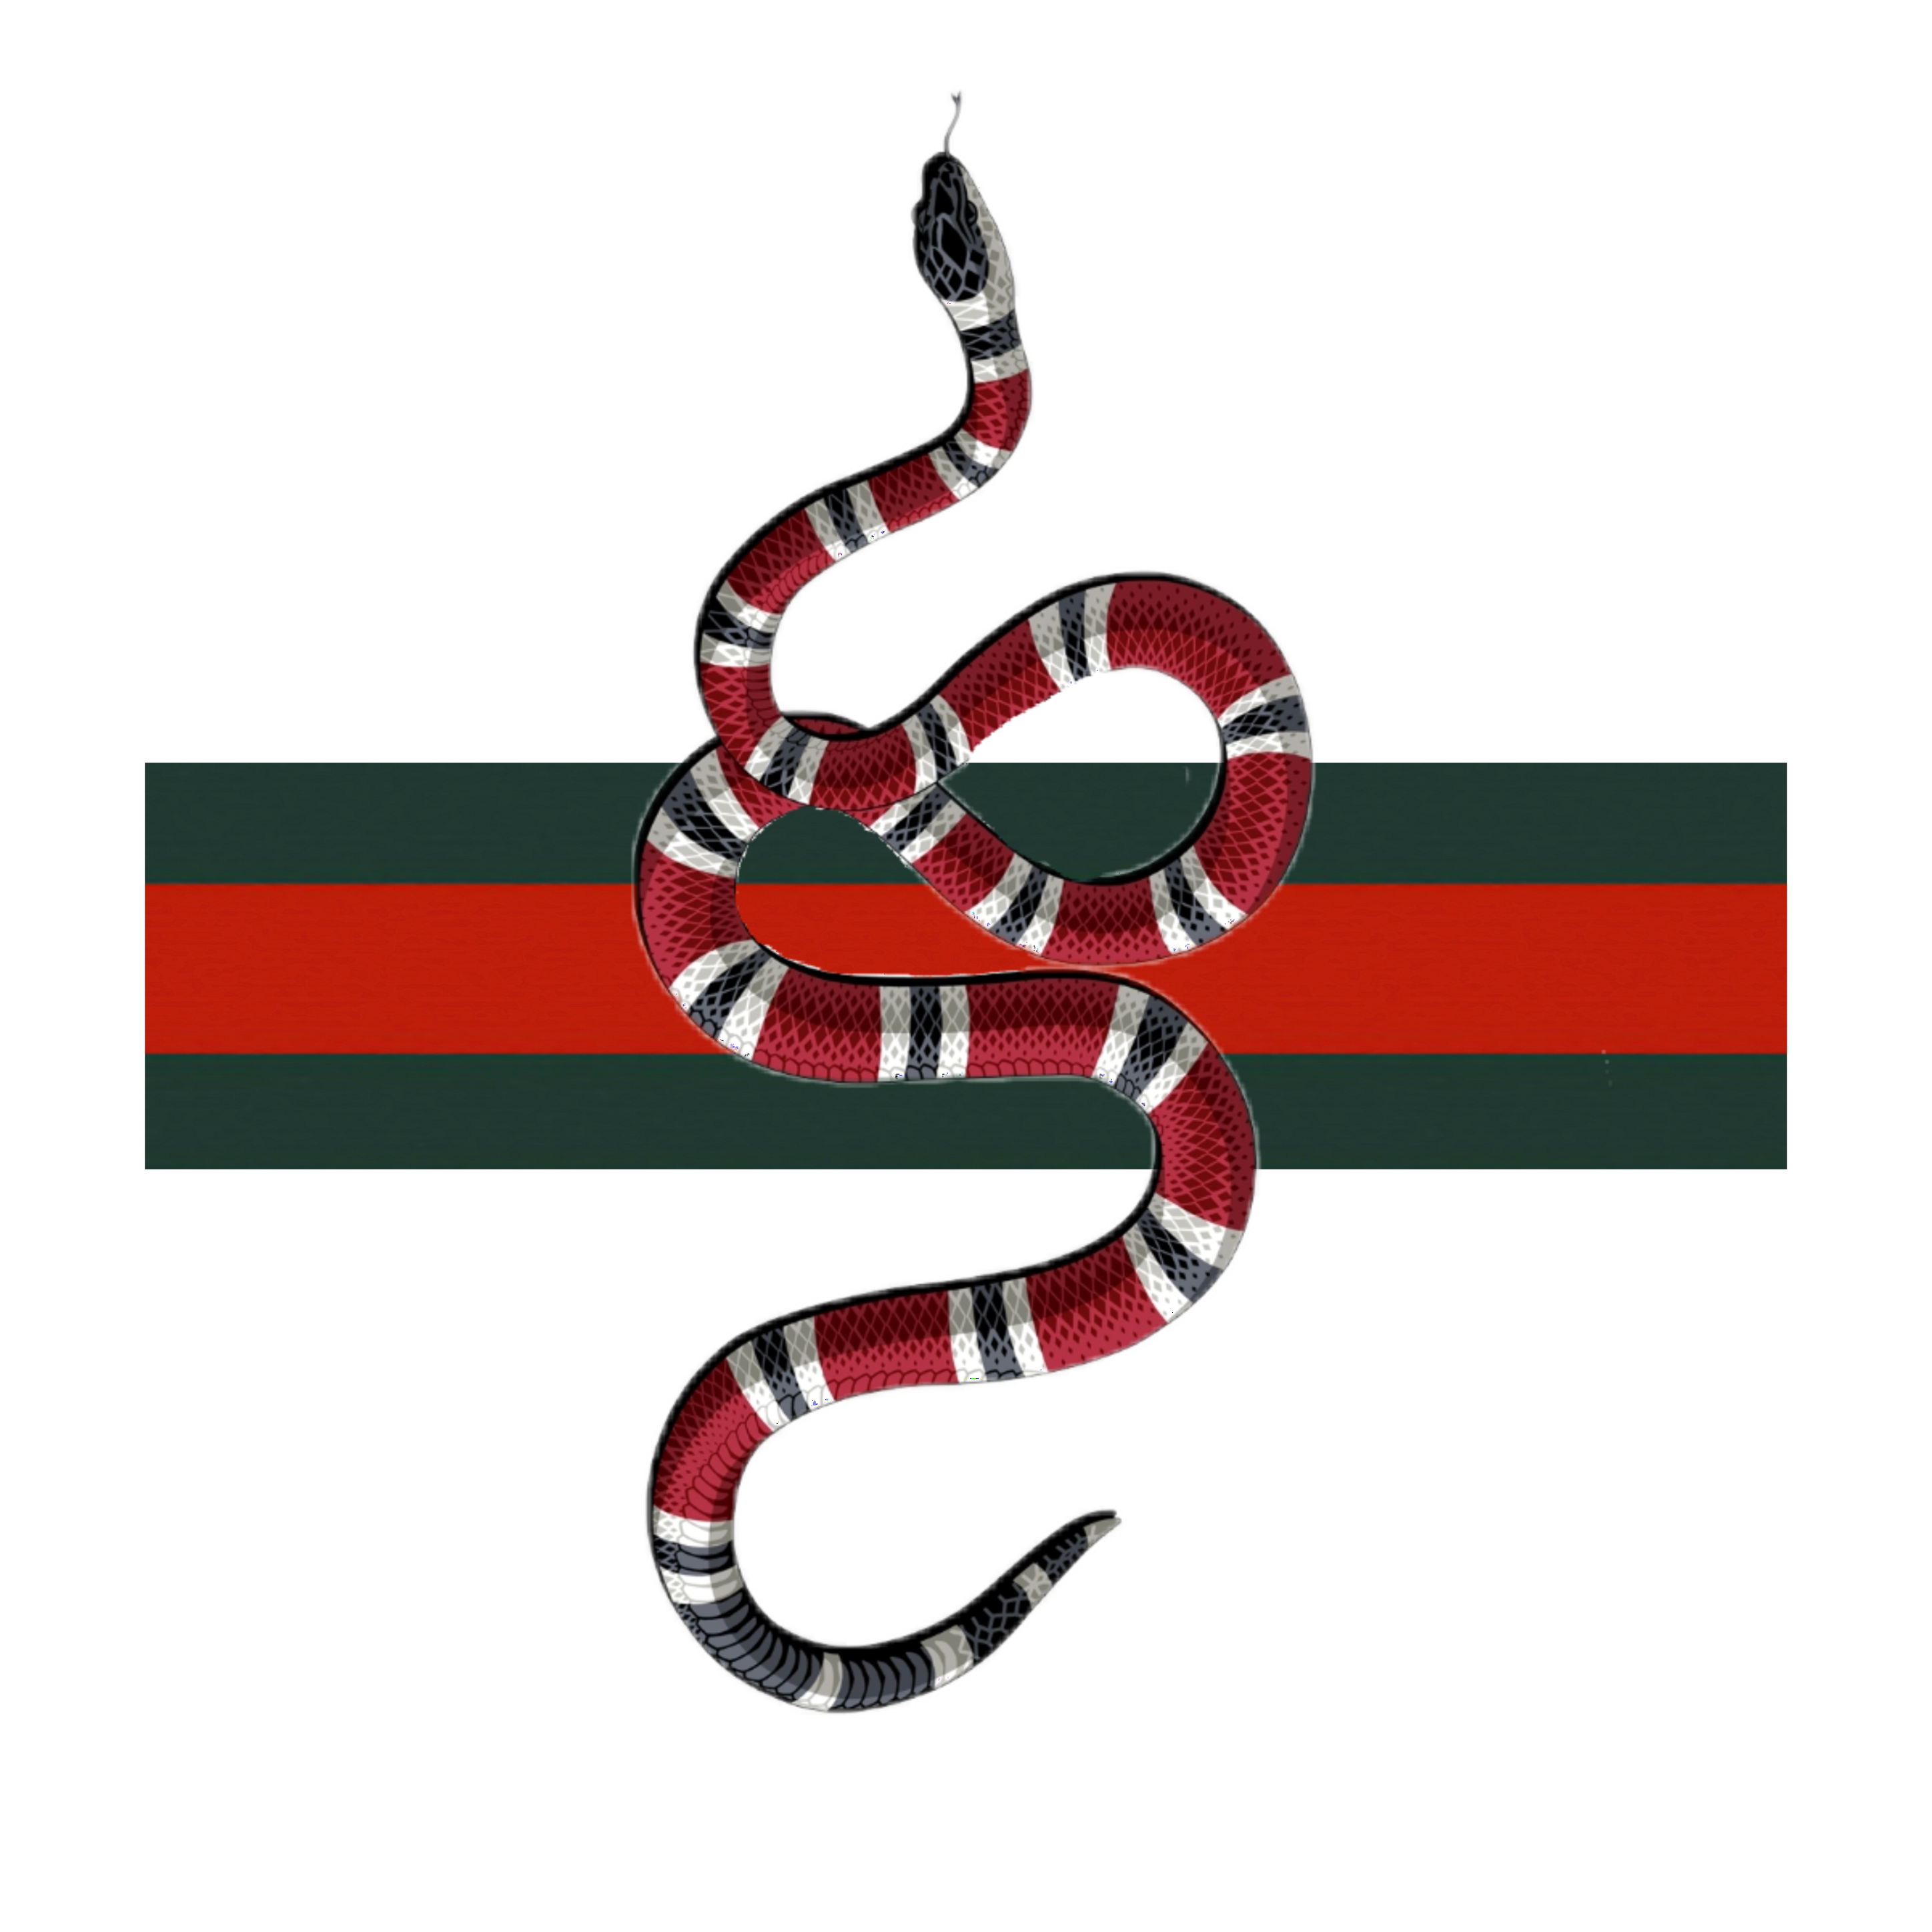 Freetoedit Gucci Remixit Snake Wallpaper Stickers Iphone Case Covers